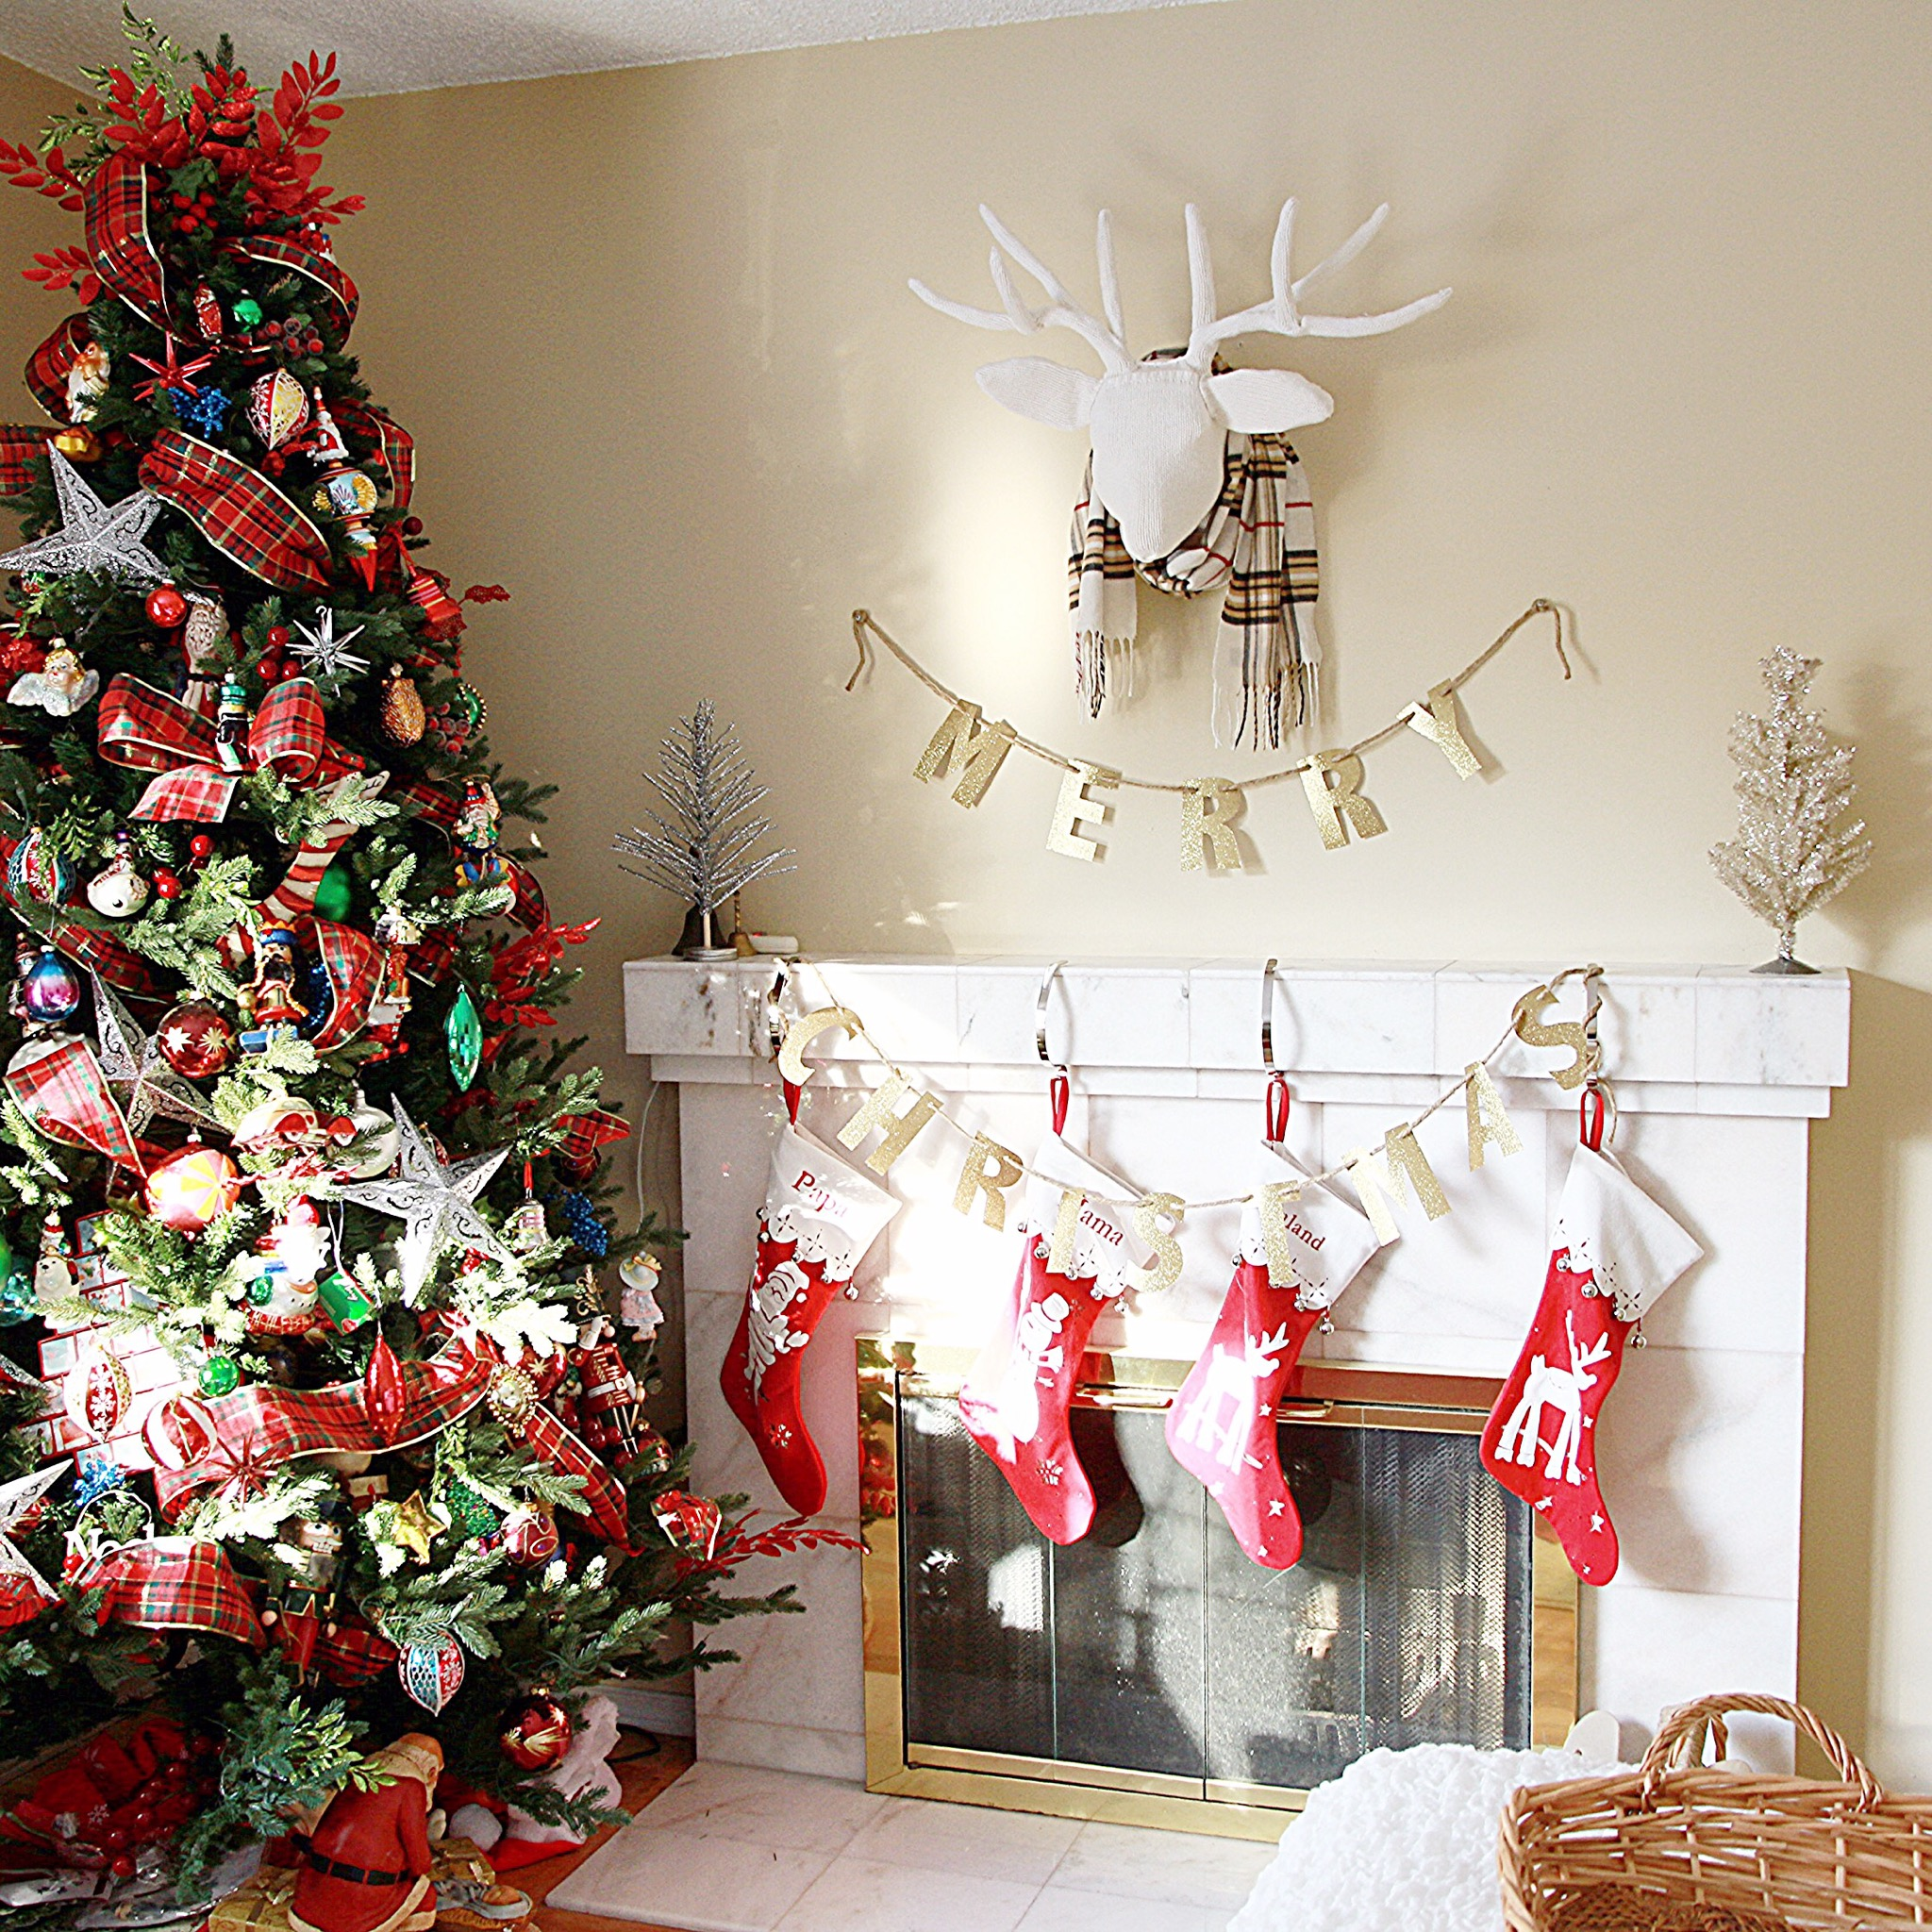 A white fireplace with antlers overhead and a large Christmas tree in the corner.